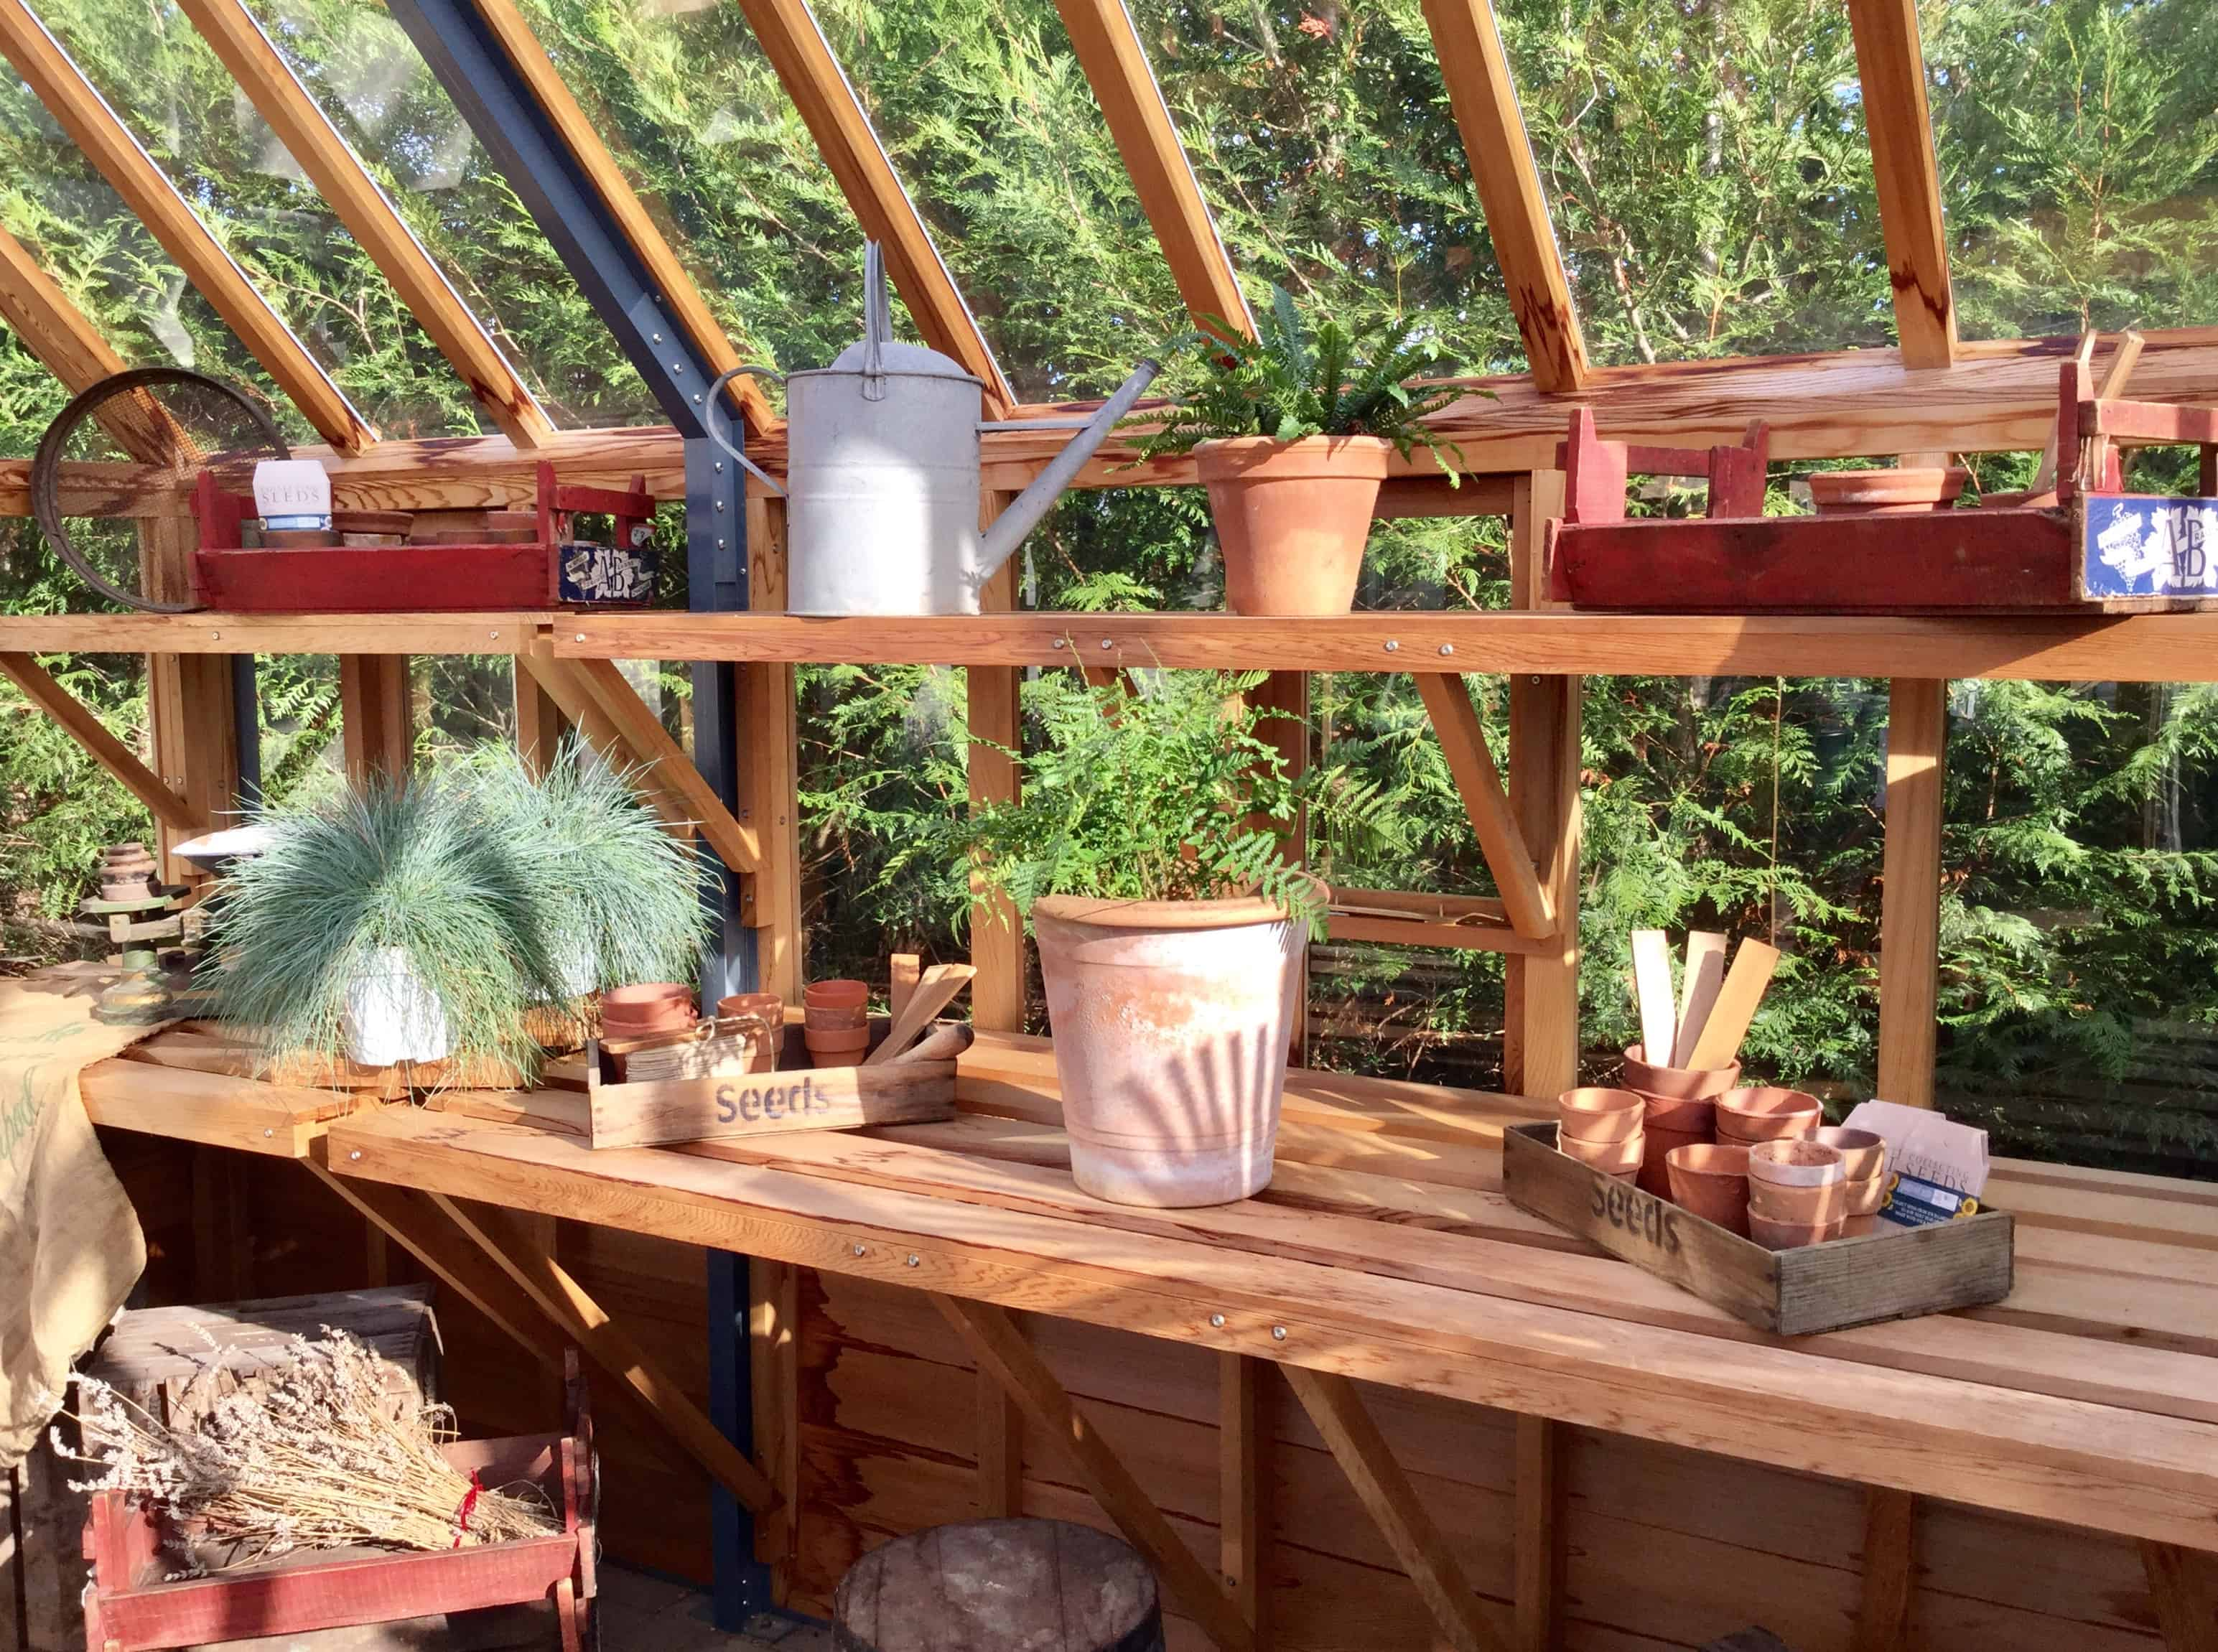 Plant pots inside greenhouse